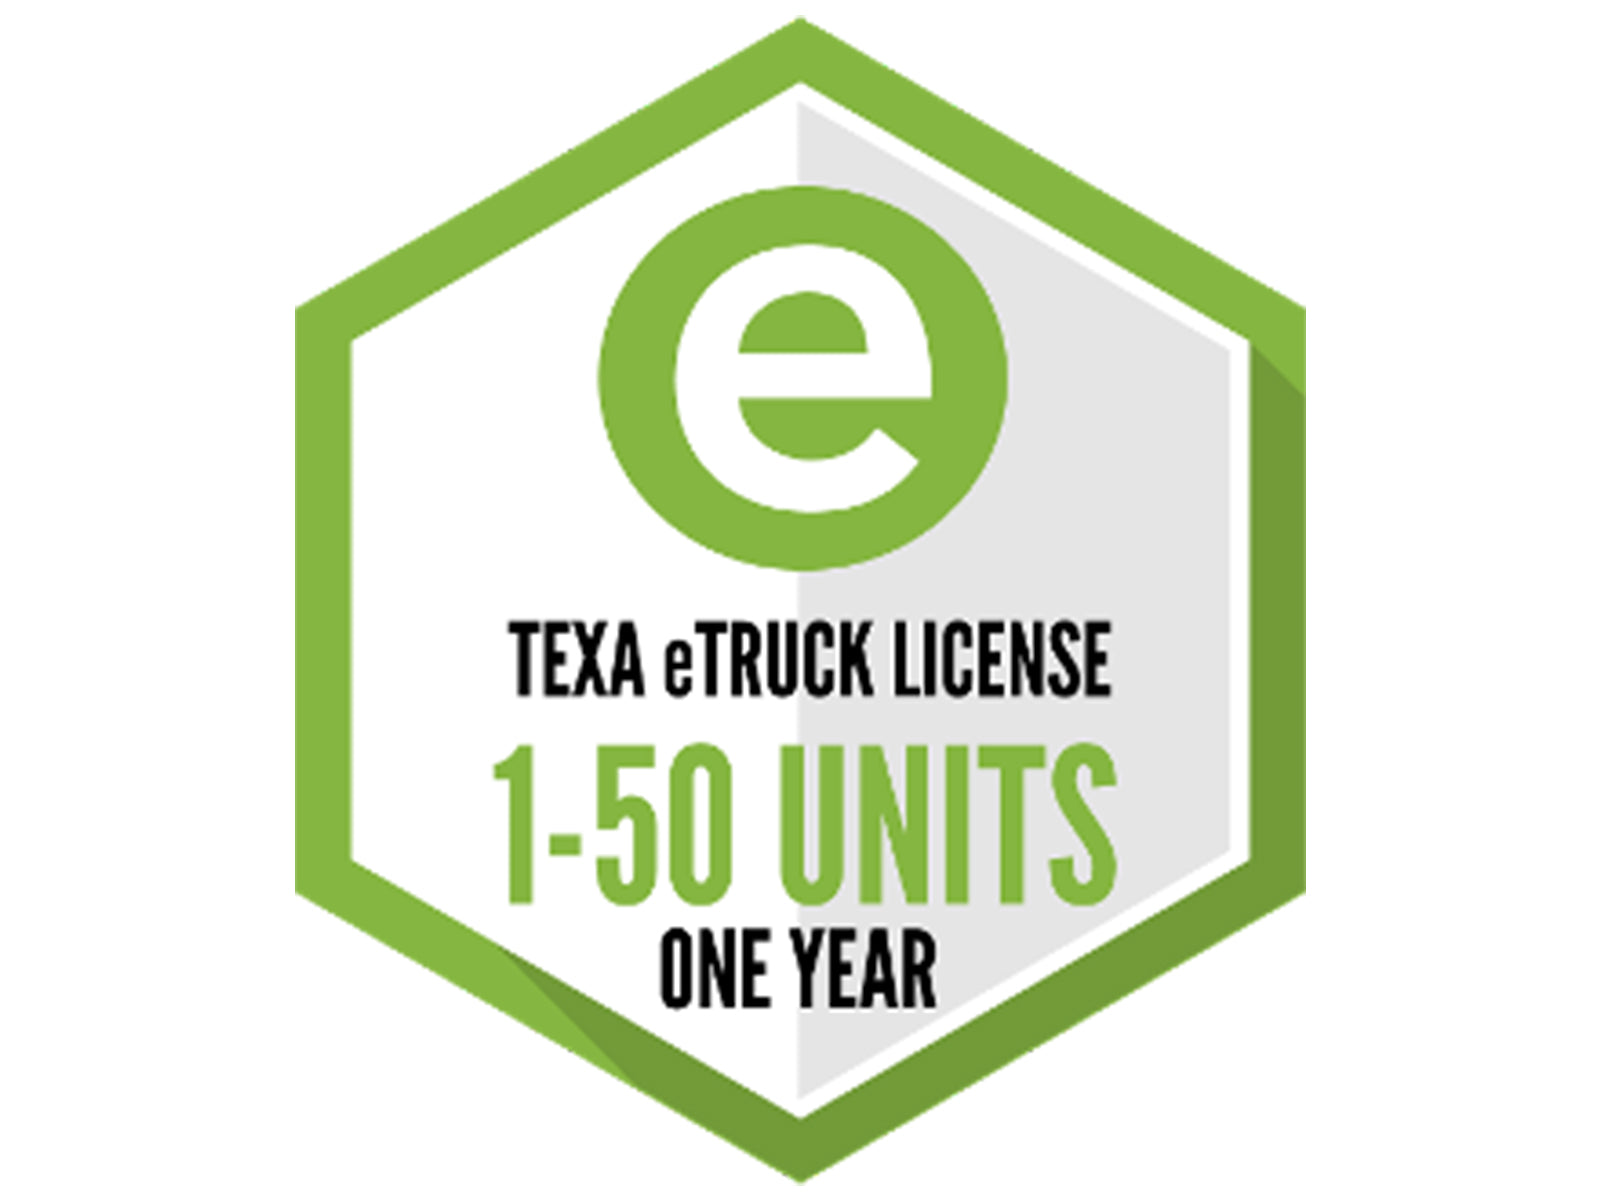 TEXA eTruck Software License for 1-50 Units